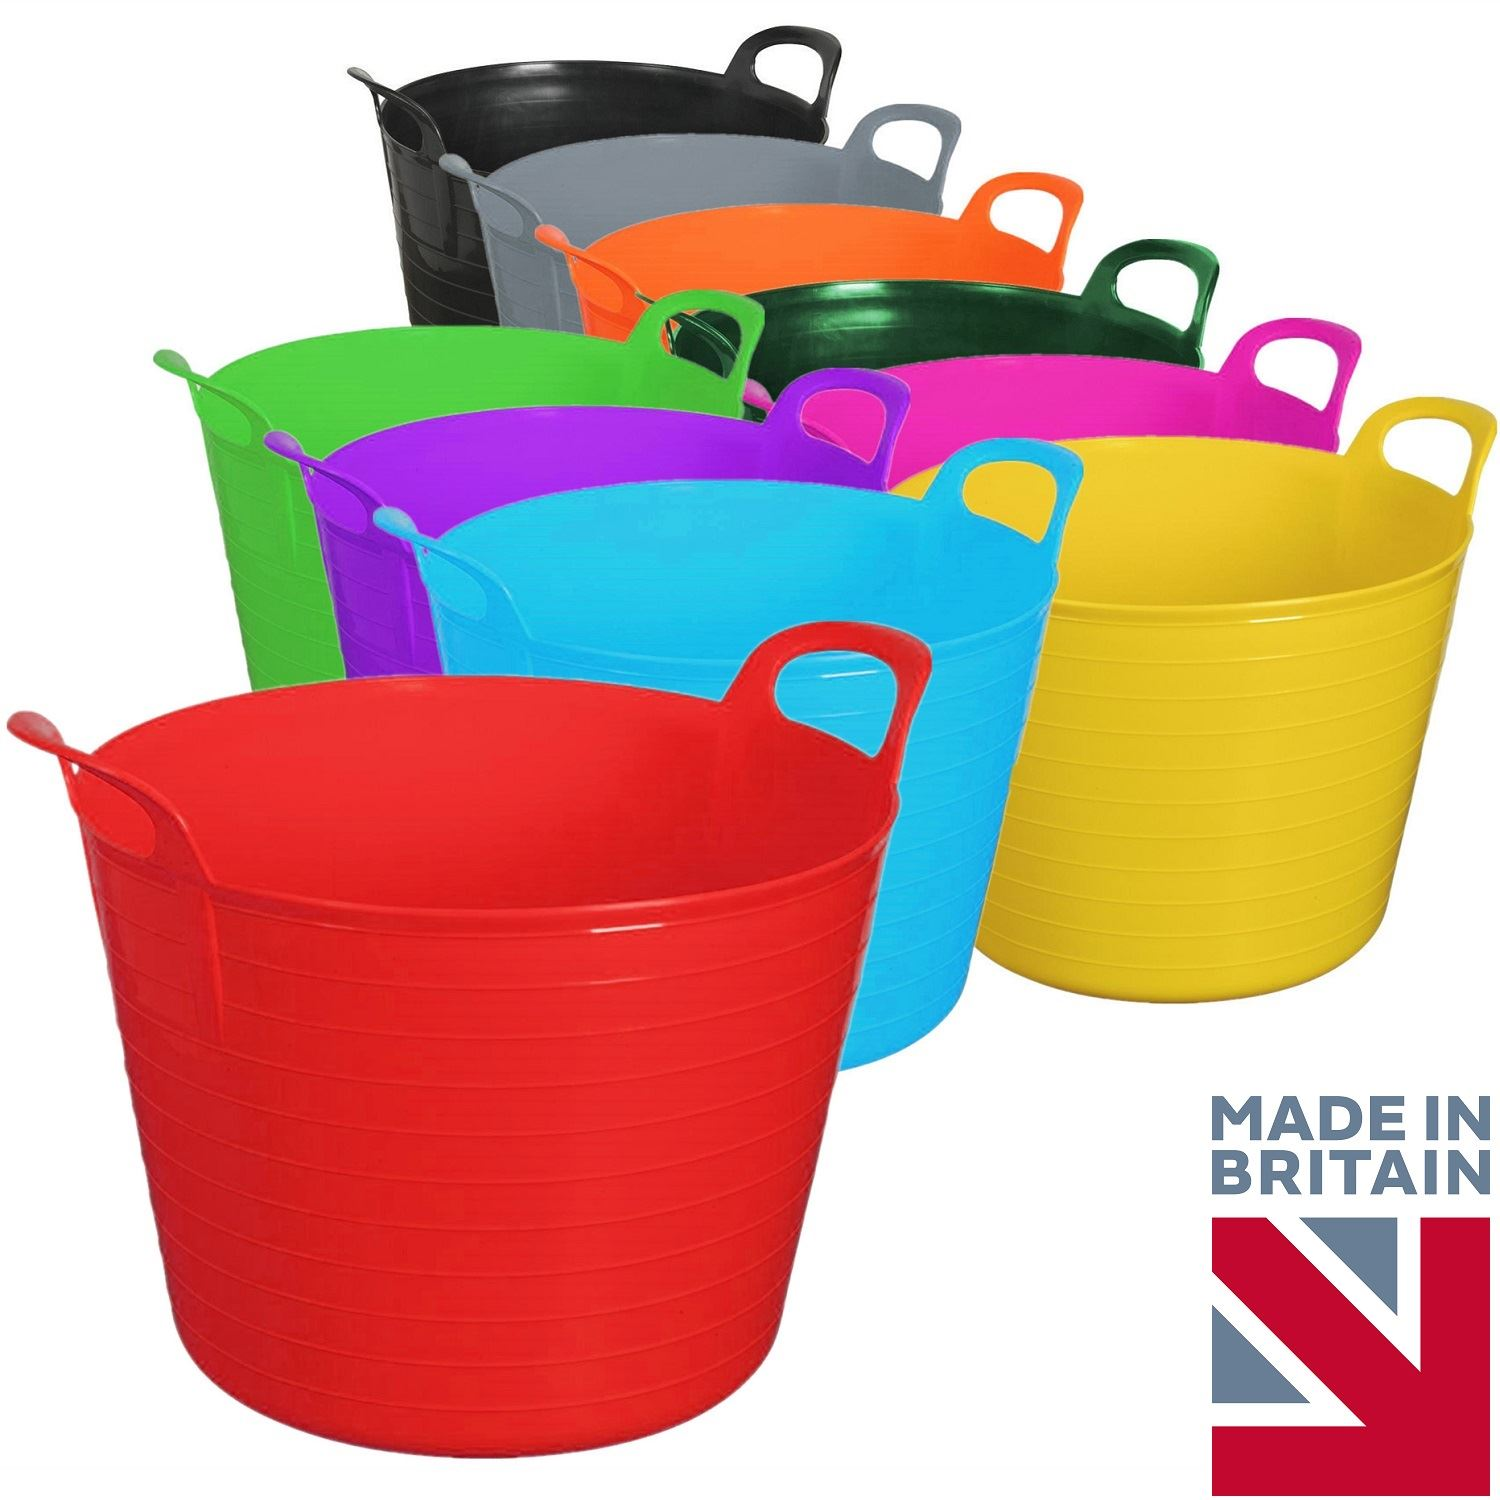 tub bin p s technicalissues global tubs res black medium heavy content inflowcomponent x duty containers storage inflow plastic